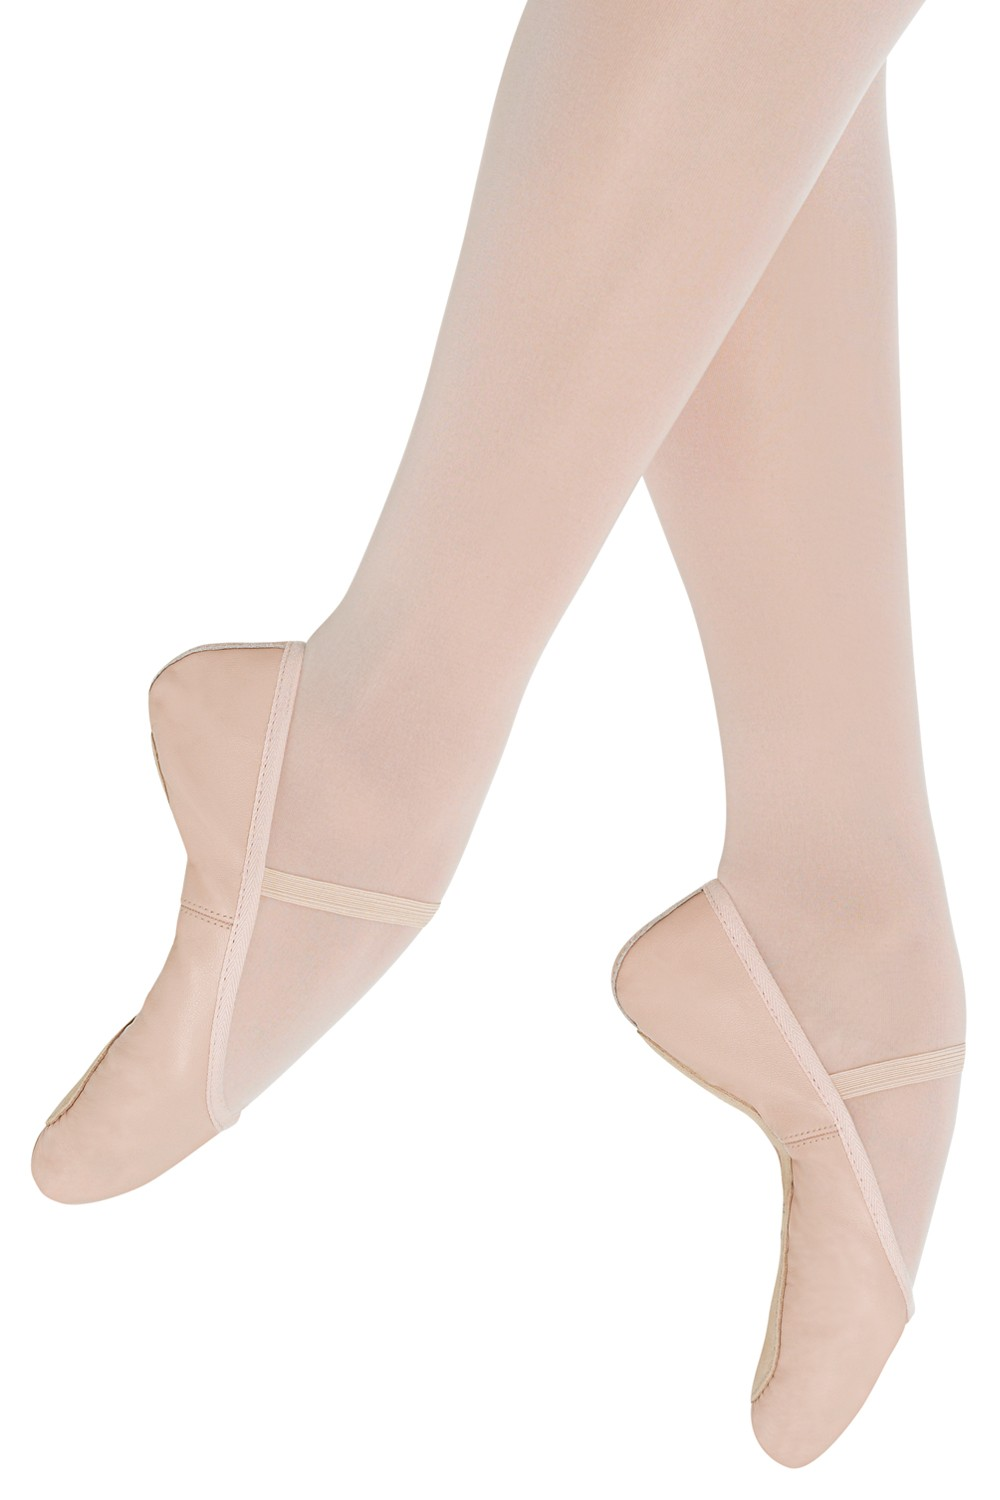 Debut I - Girls Girl's Ballet Shoes